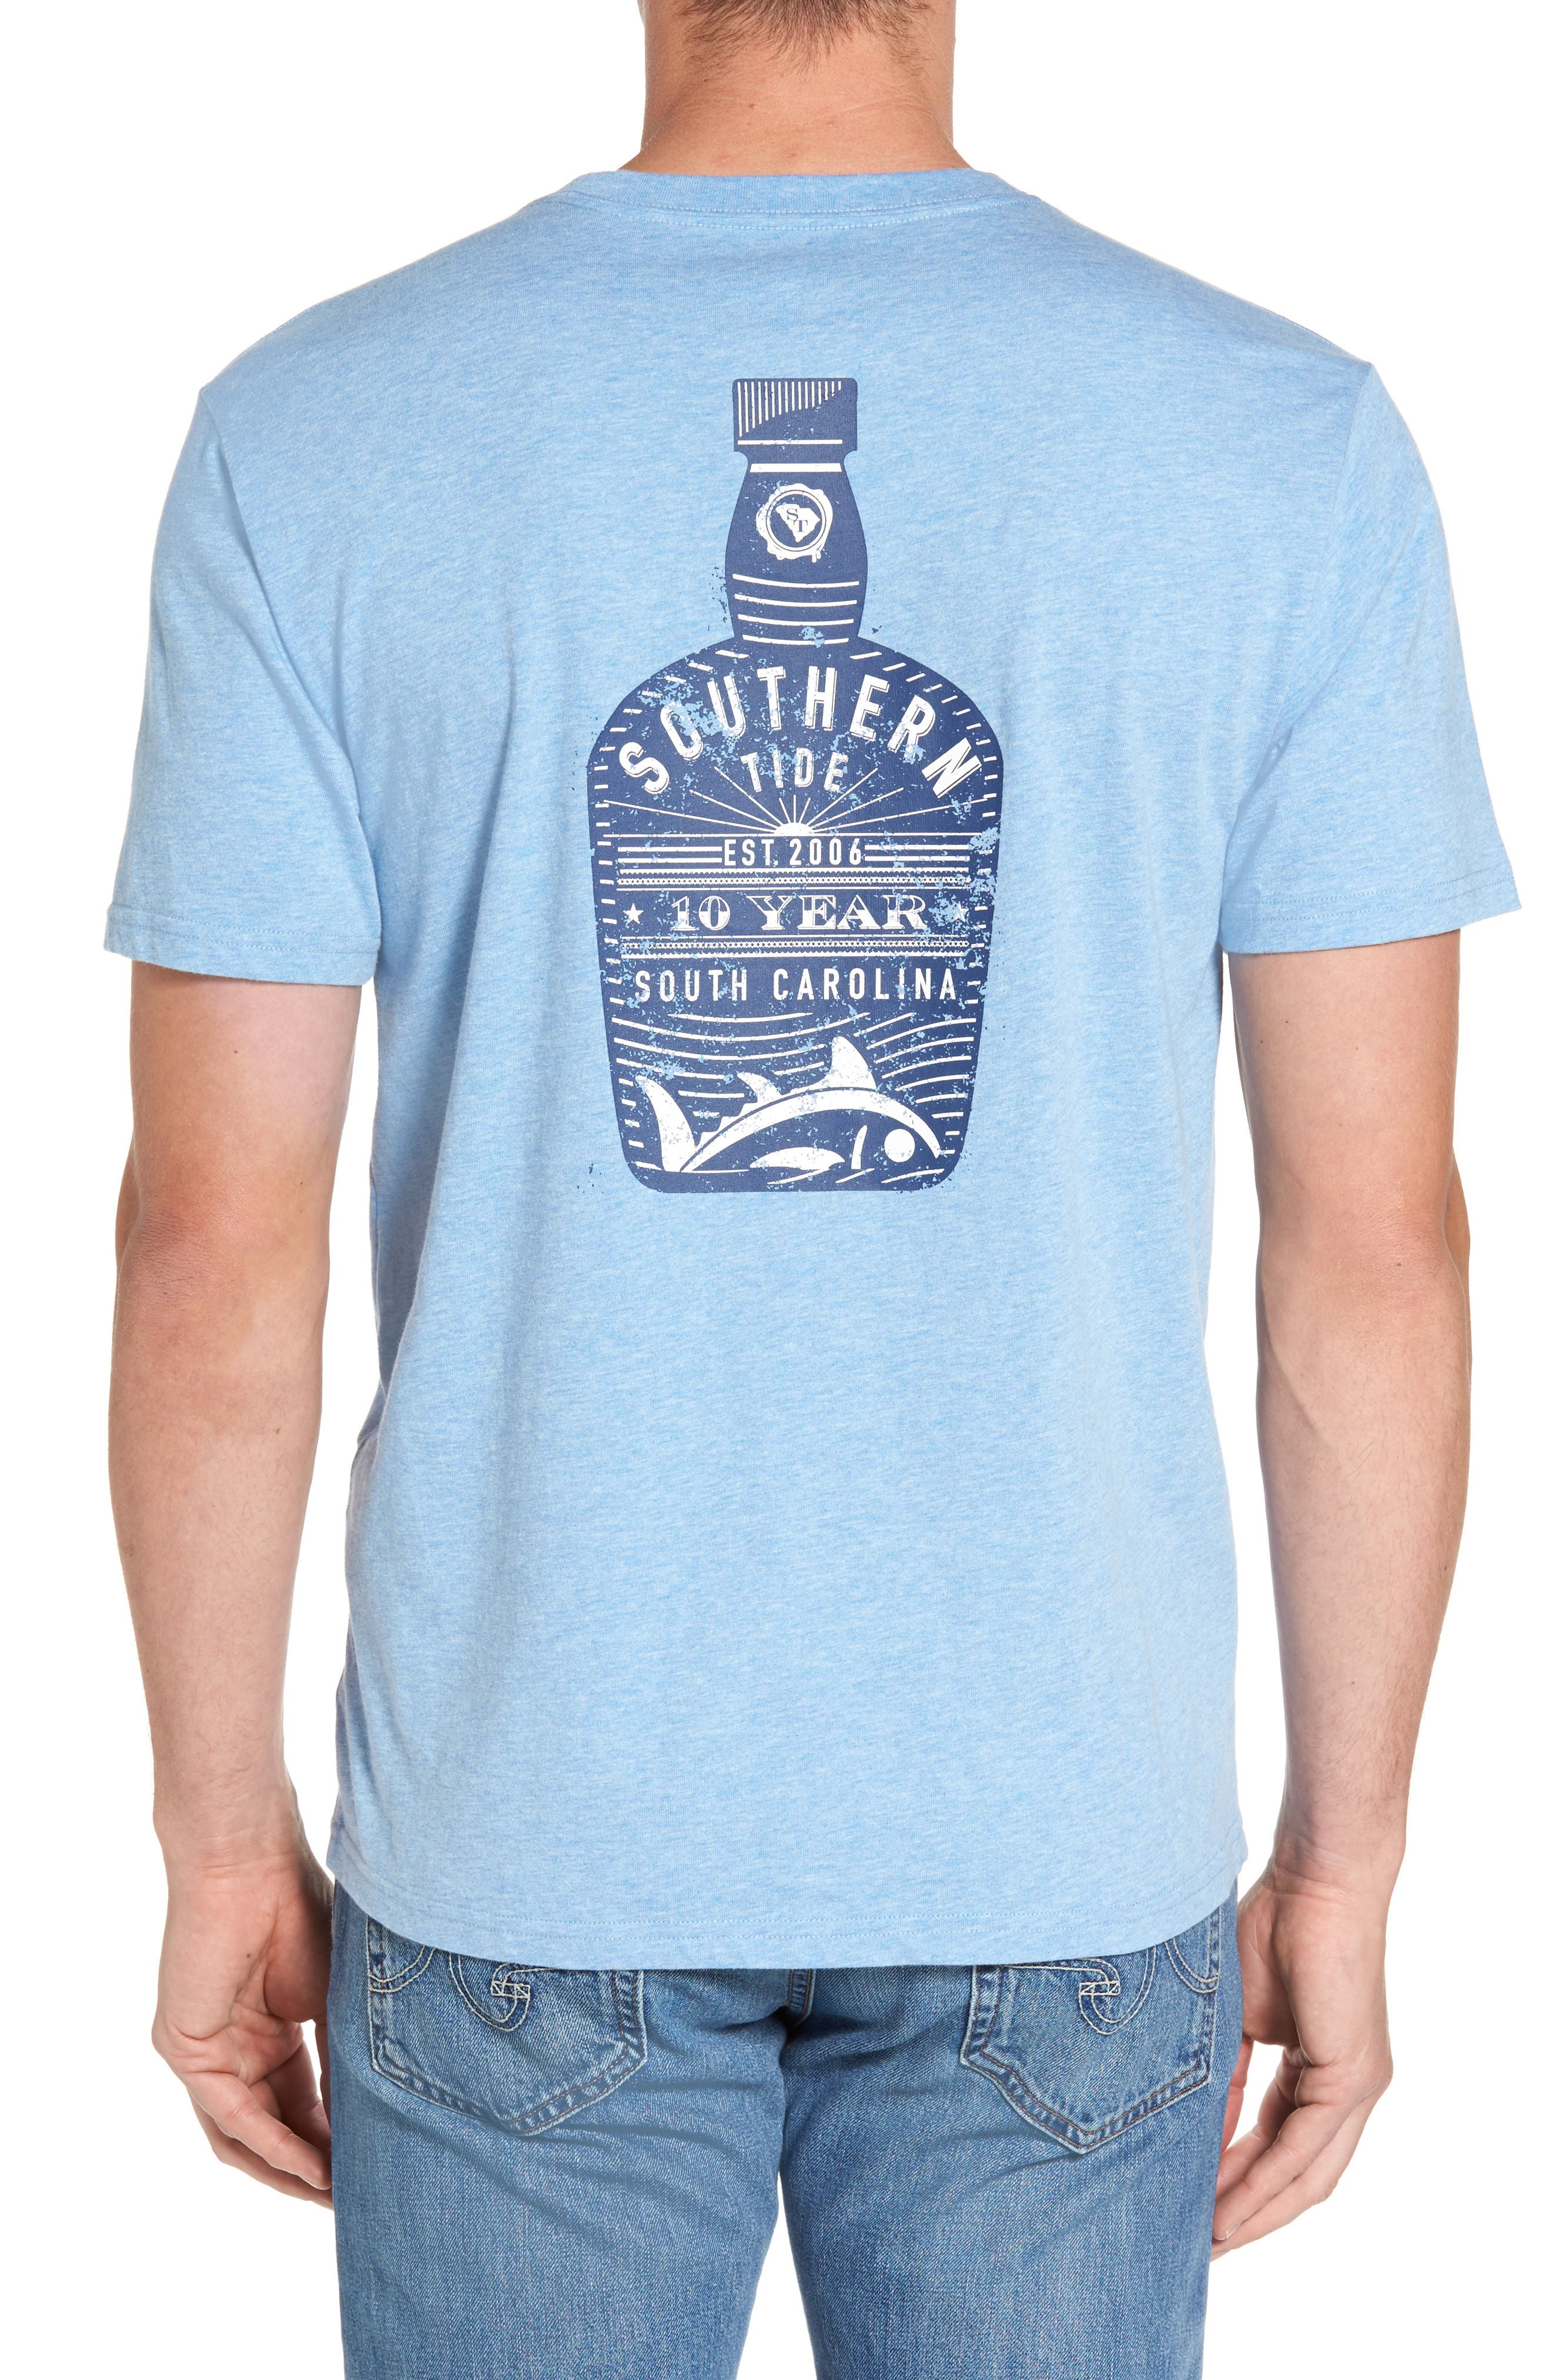 Alternate Image 1 Selected - Southern Tide Bourbon Bottle Classic Fit Graphic T-Shirt